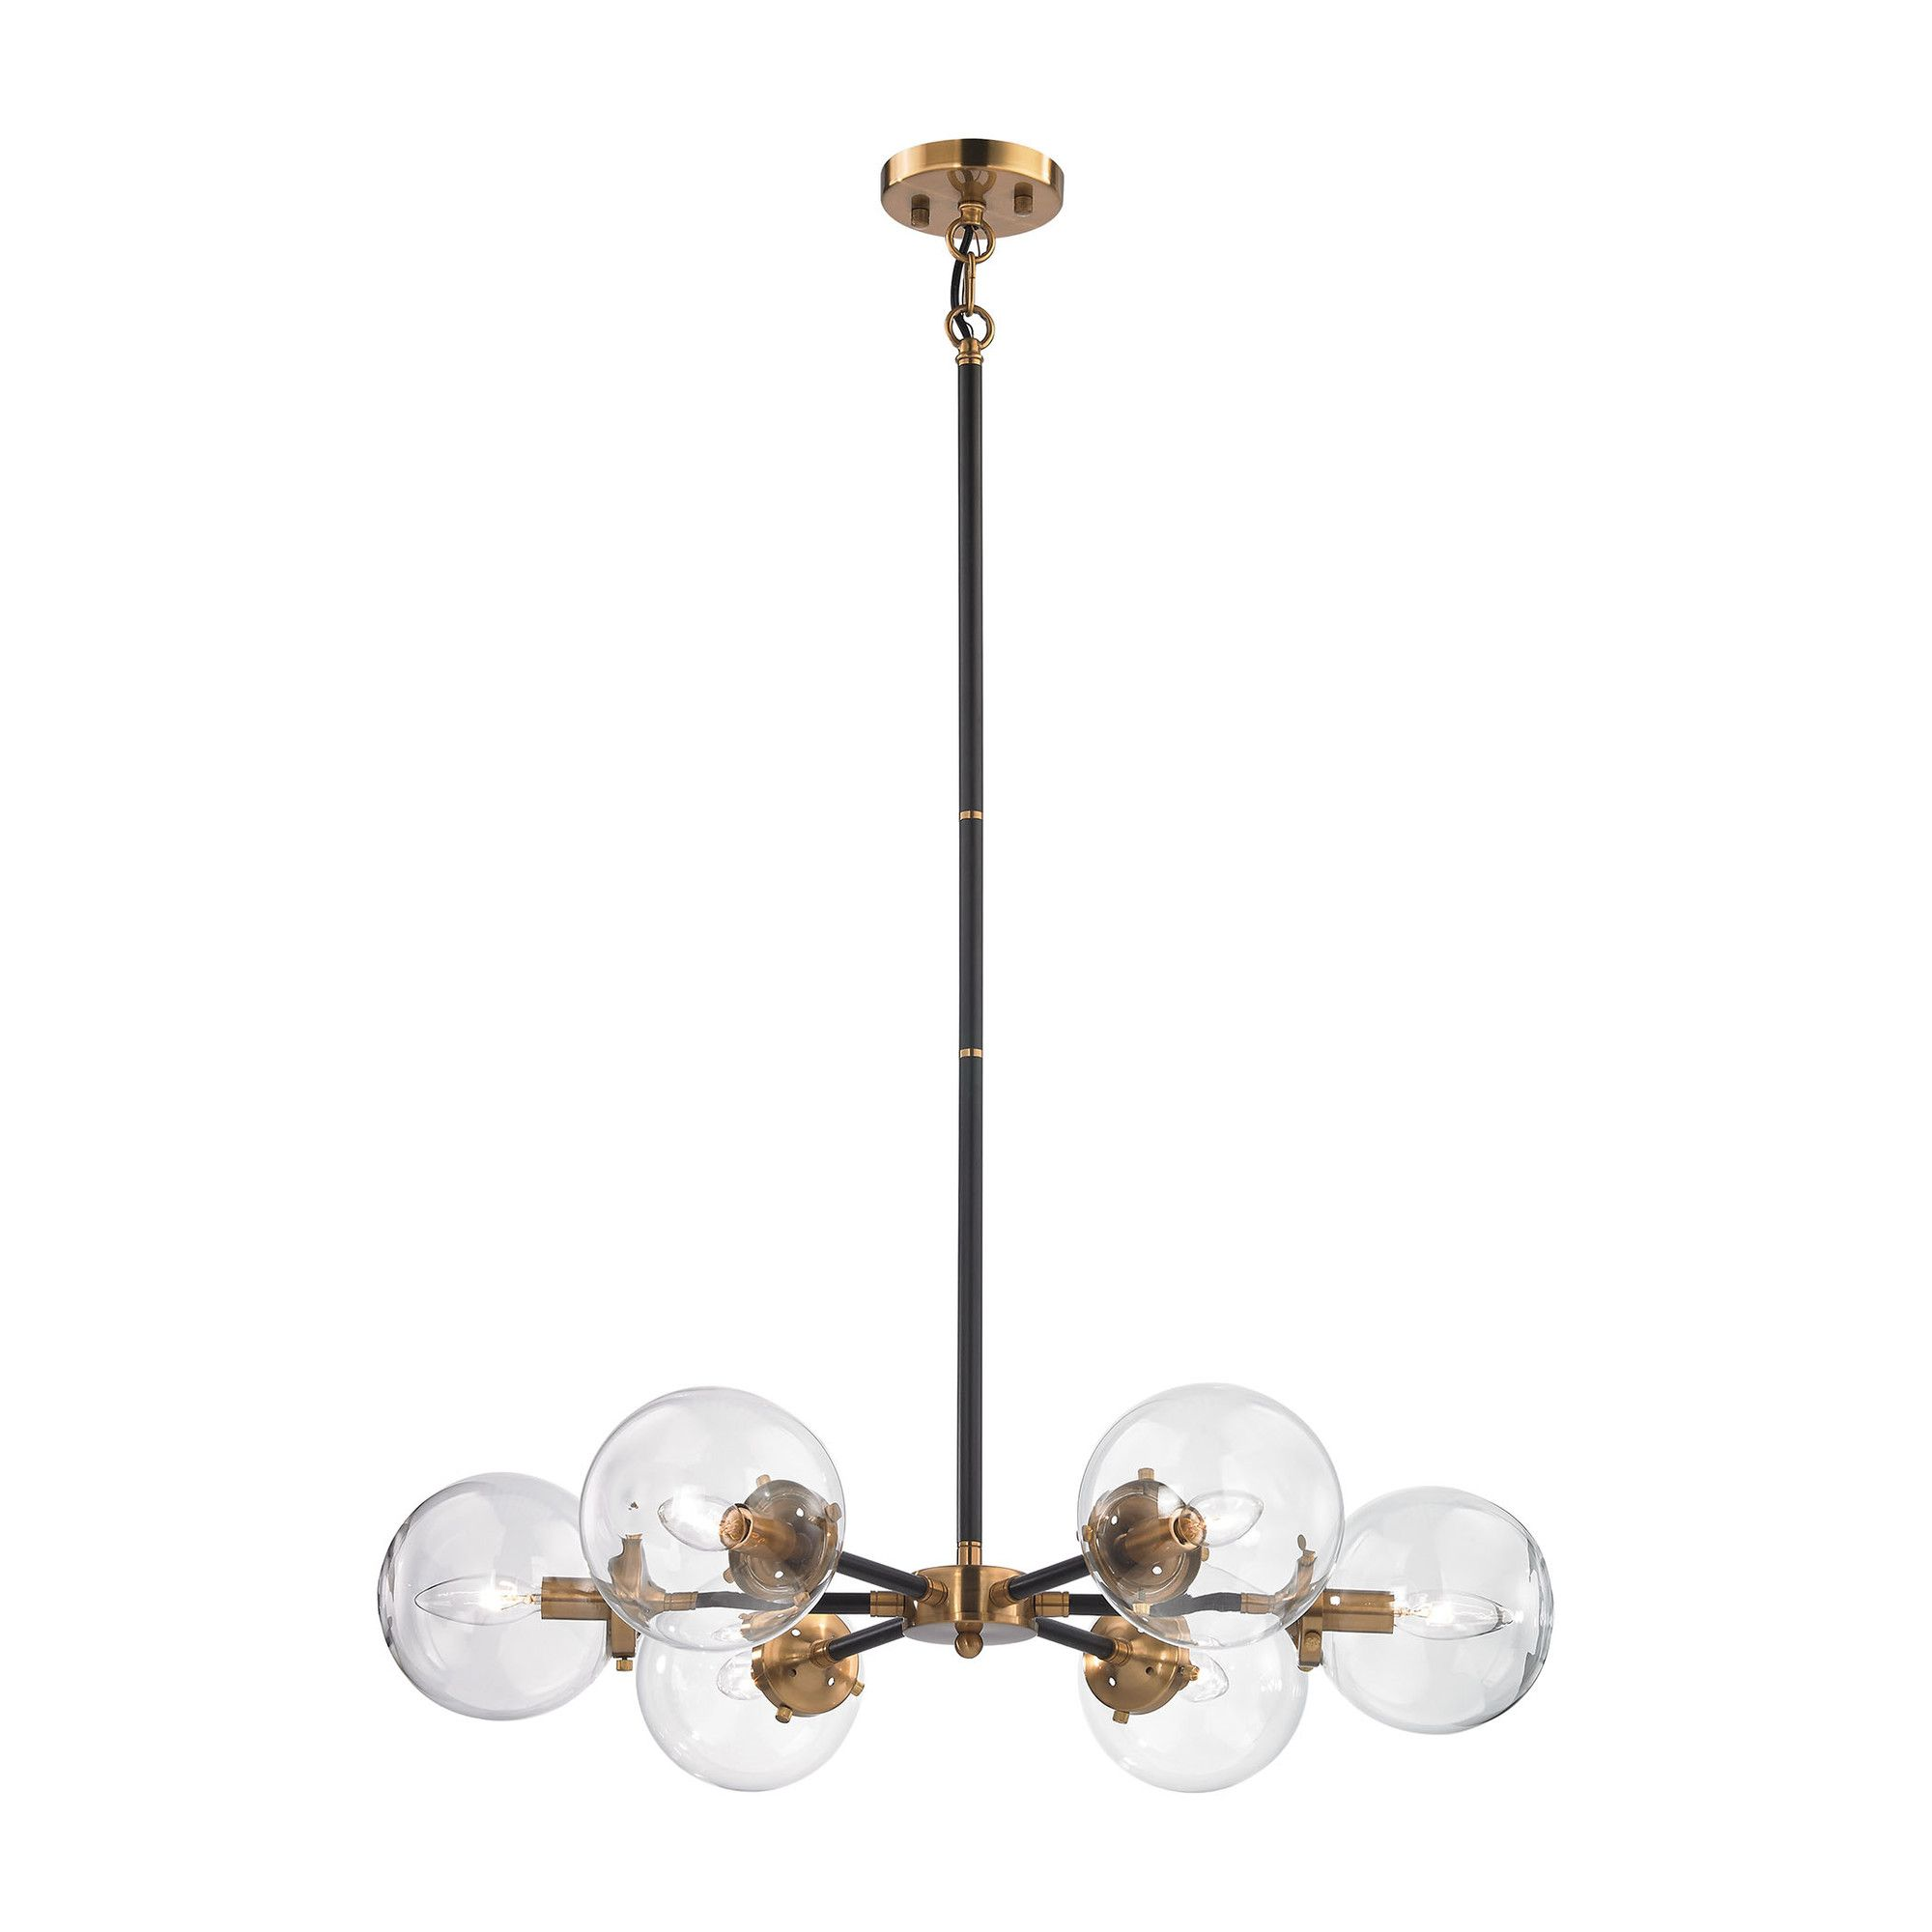 Grayslake 6 Light Sputnik Chandelier & Reviews